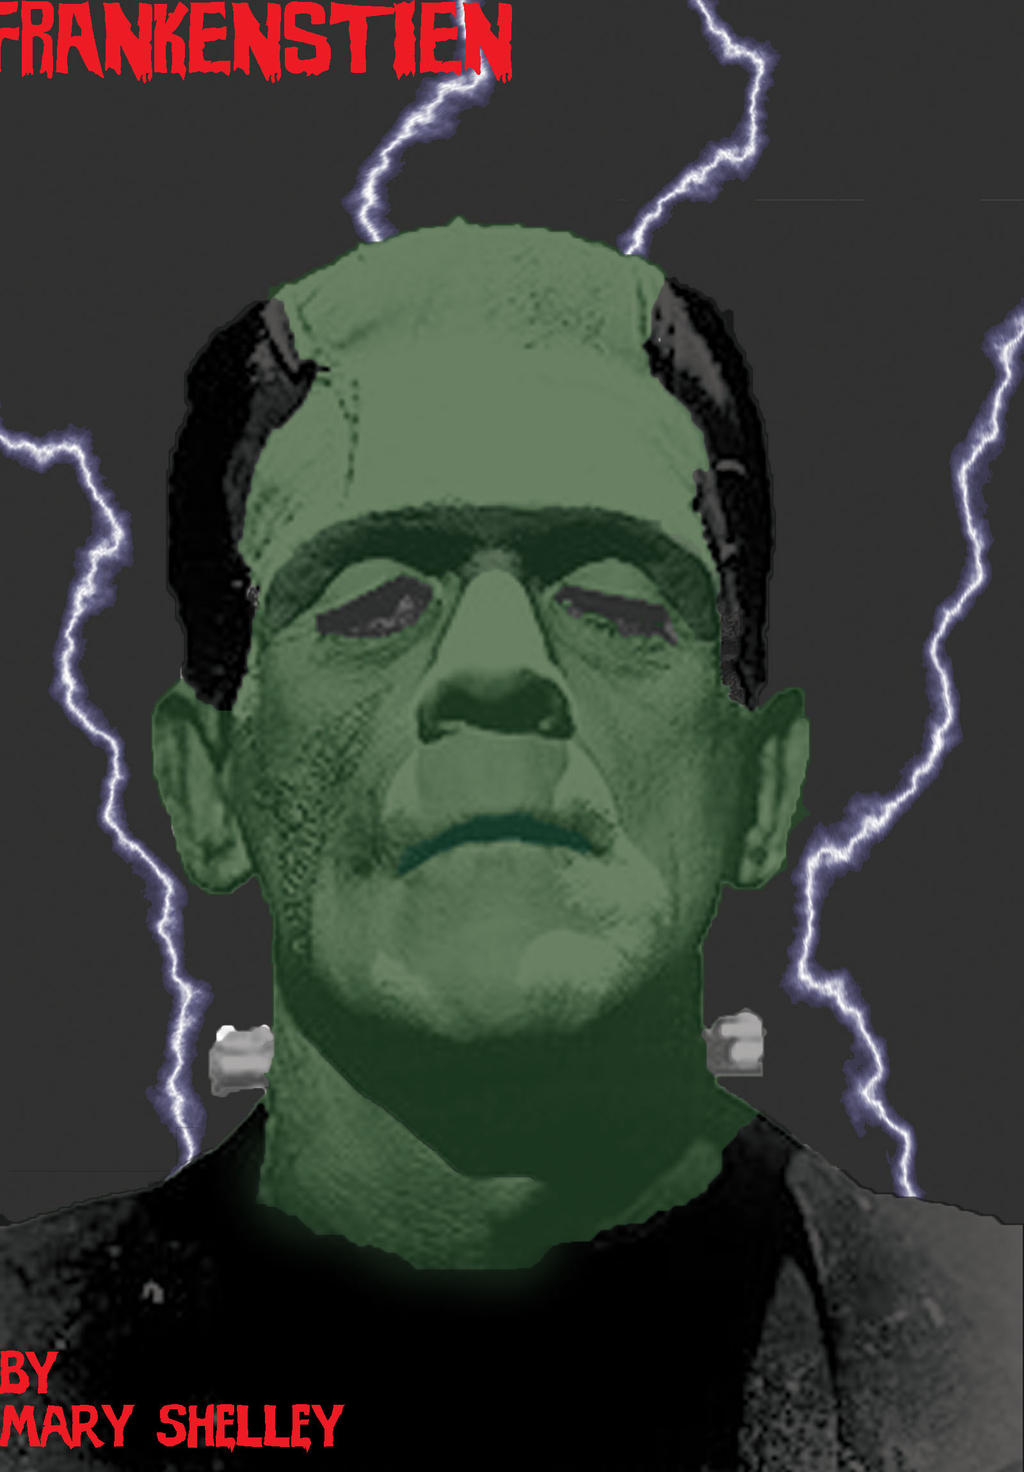 Frankenstein Book Cover Art ~ Frankenstein book cover reloaded by fraggerboi on